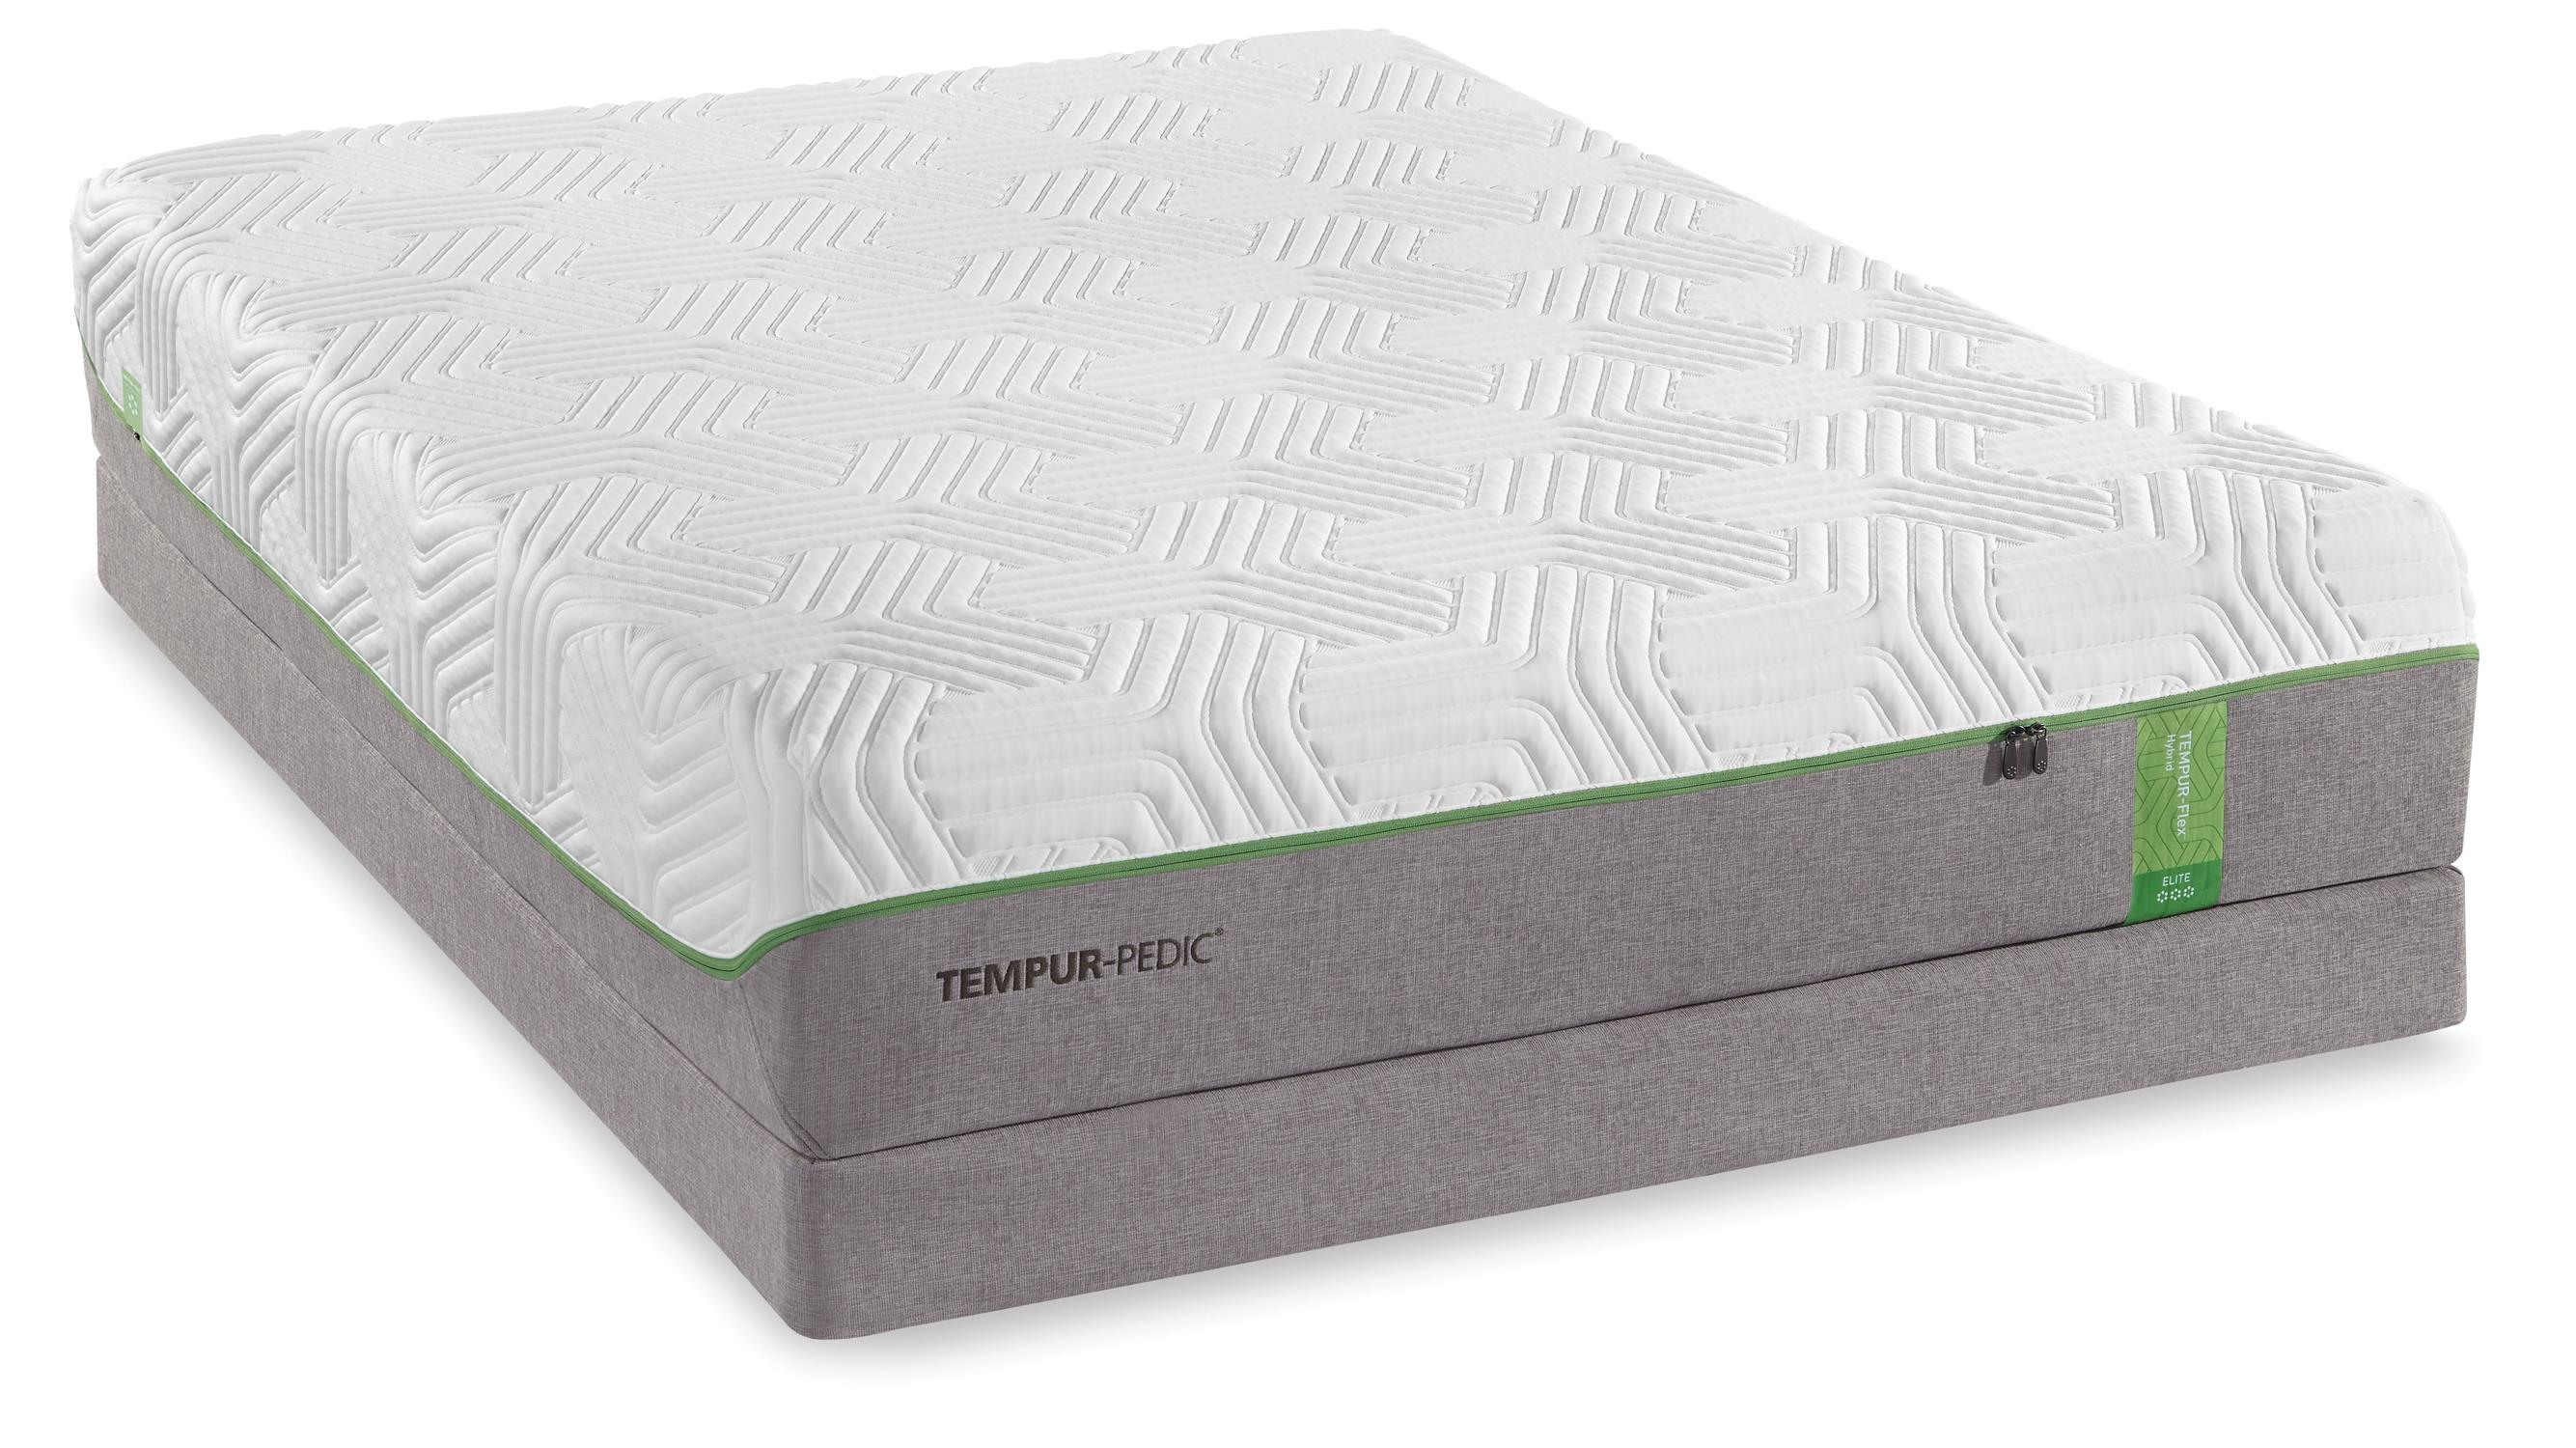 Tempur-Pedic® TEMPUR-Flex Elite King Medium Soft Plush Mattress Set - Item Number: 10117170+2x21510120